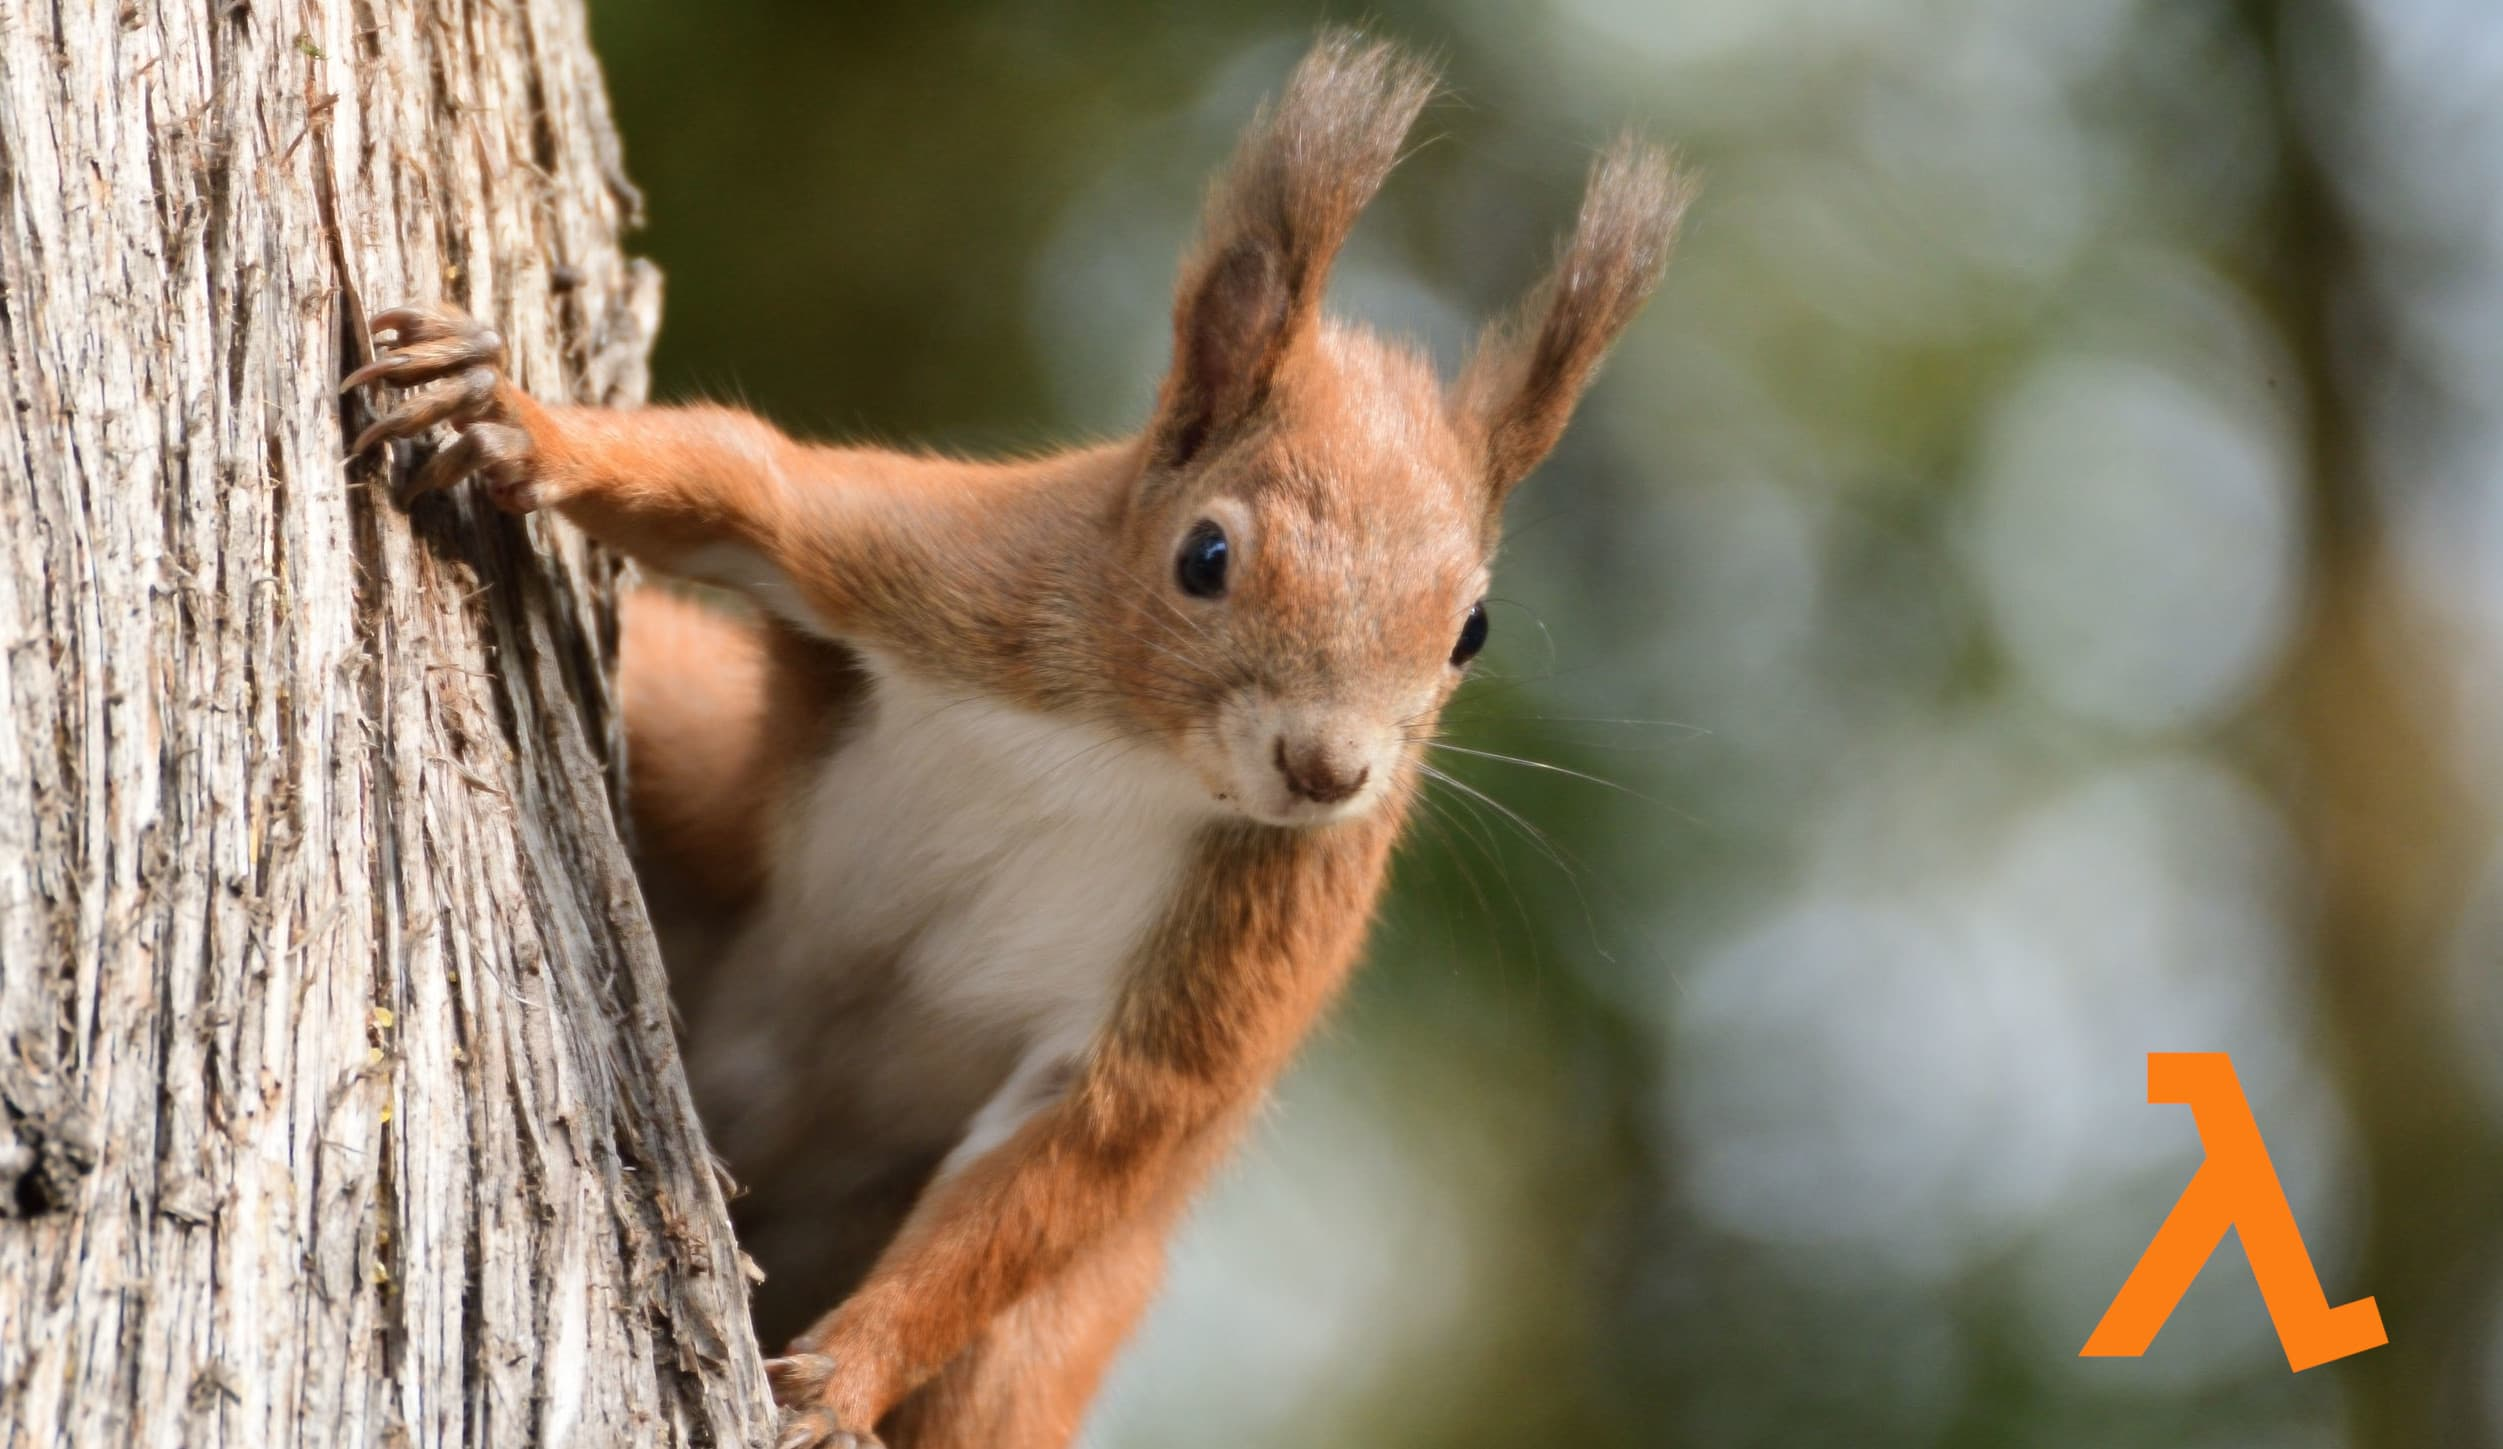 An image of a squirrel, representing the mascot of AWS SAM.